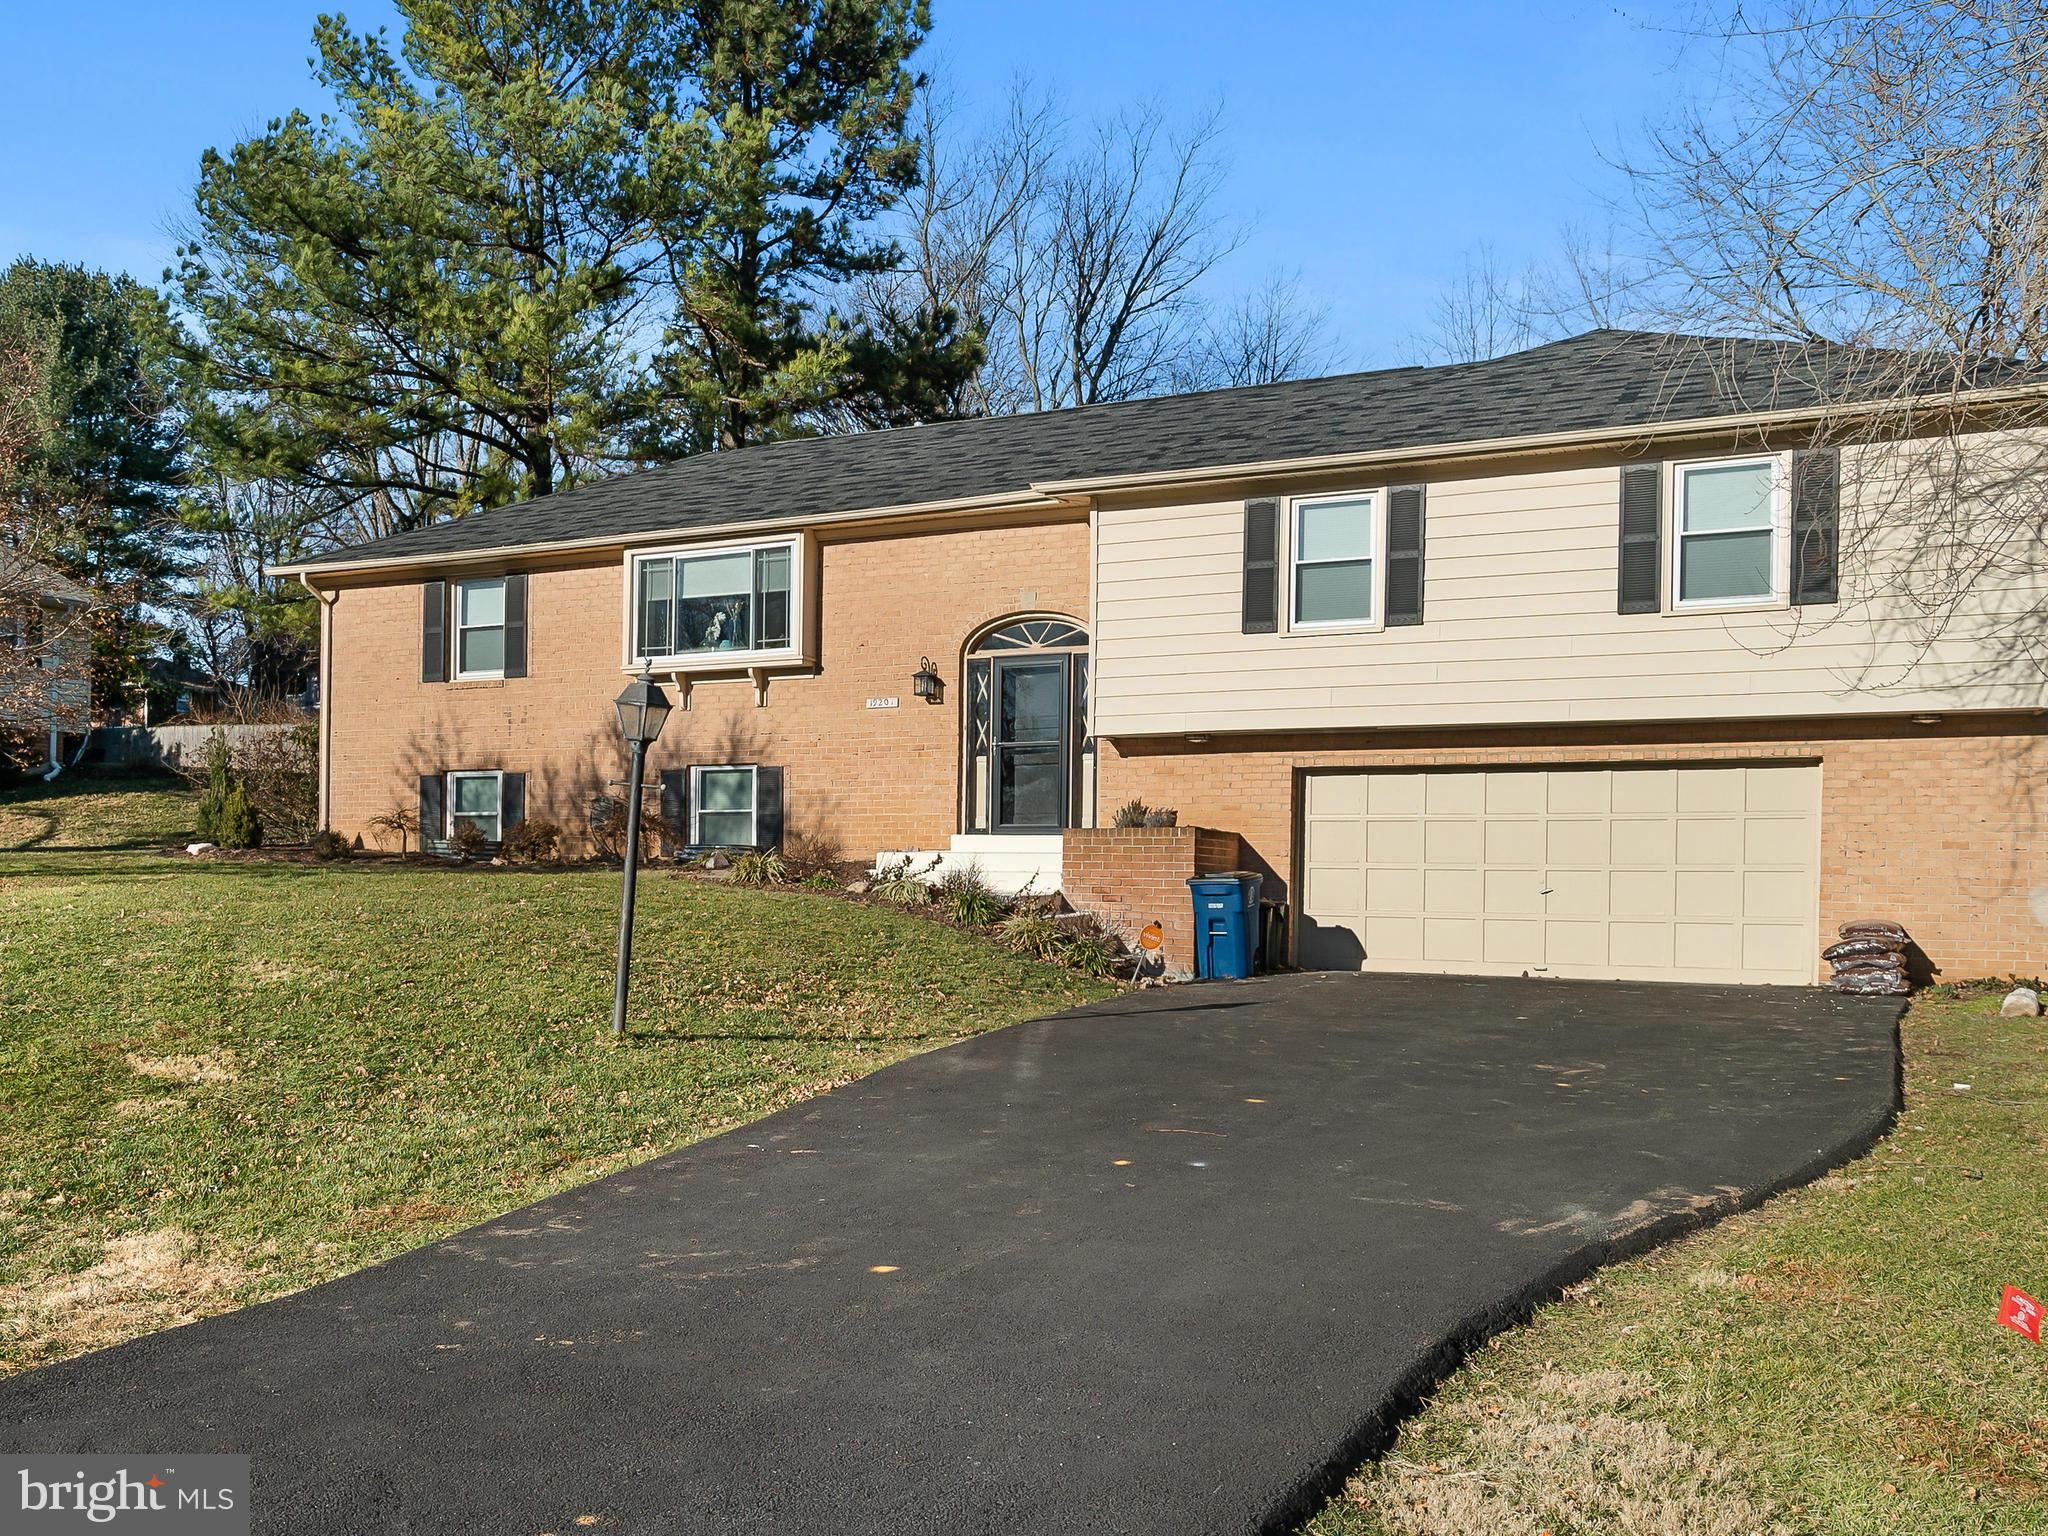 19201 WILLOW GROVE ROAD, OLNEY, MD 20832